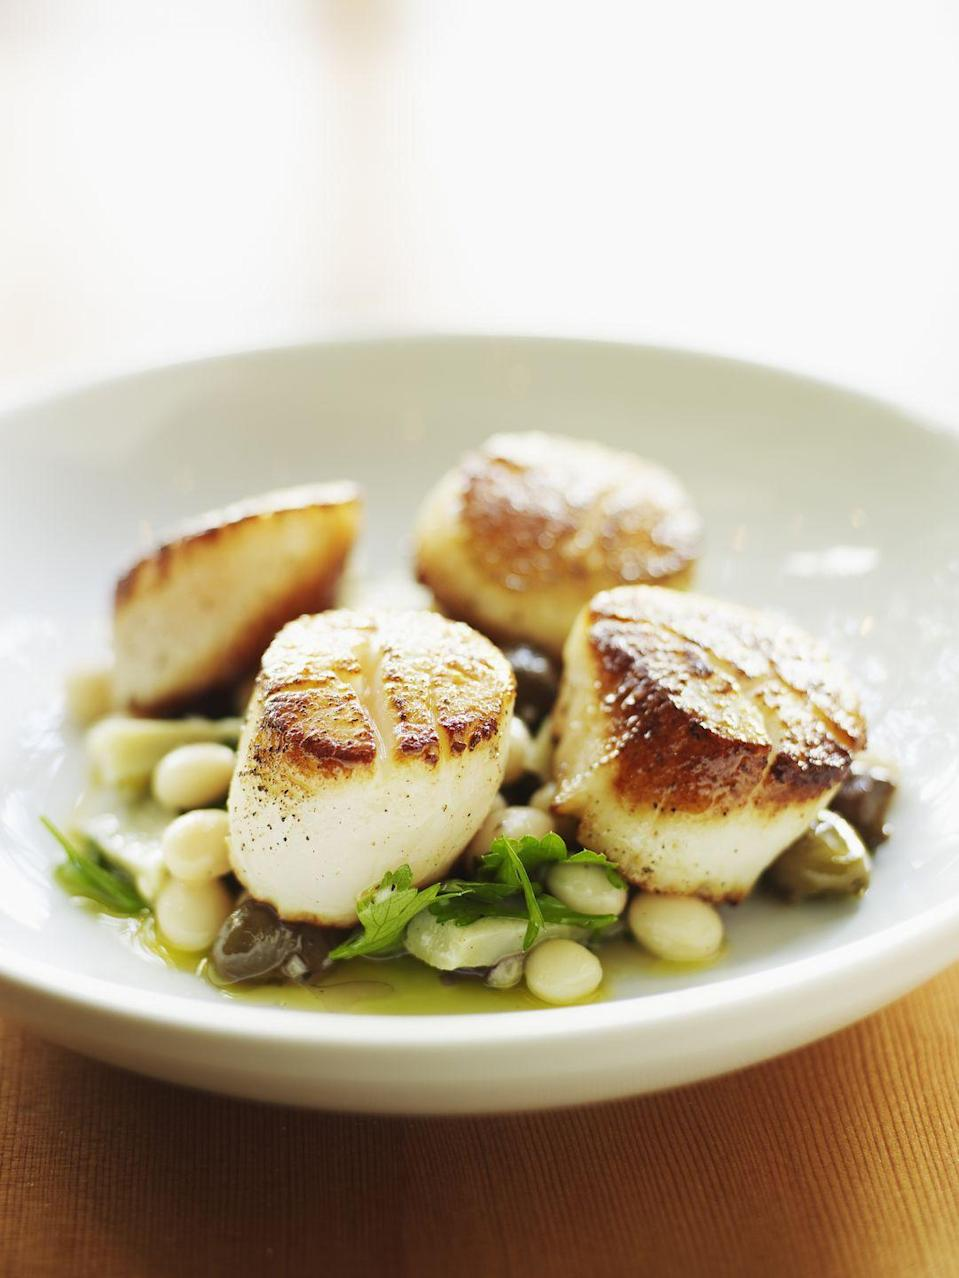 """<p>A <a href=""""https://www.seafoodhealthfacts.org/seafood-choices/description-top-commercial-seafood-items/scallops"""" rel=""""nofollow noopener"""" target=""""_blank"""" data-ylk=""""slk:3-oz. serving of steamed scallops"""" class=""""link rapid-noclick-resp"""">3-oz. serving of steamed scallops</a> has 17 grams of protein for just 90 calories. That much protein will keep you full till your next meal. </p><p><strong>Recipe to try:</strong> <a href=""""https://www.womansday.com/food-recipes/food-drinks/recipes/a31935/bacon-wrapped-scallops-recipe-ghk0810/"""" rel=""""nofollow noopener"""" target=""""_blank"""" data-ylk=""""slk:Bacon-Wrapped Scallops"""" class=""""link rapid-noclick-resp"""">Bacon-Wrapped Scallops</a></p>"""